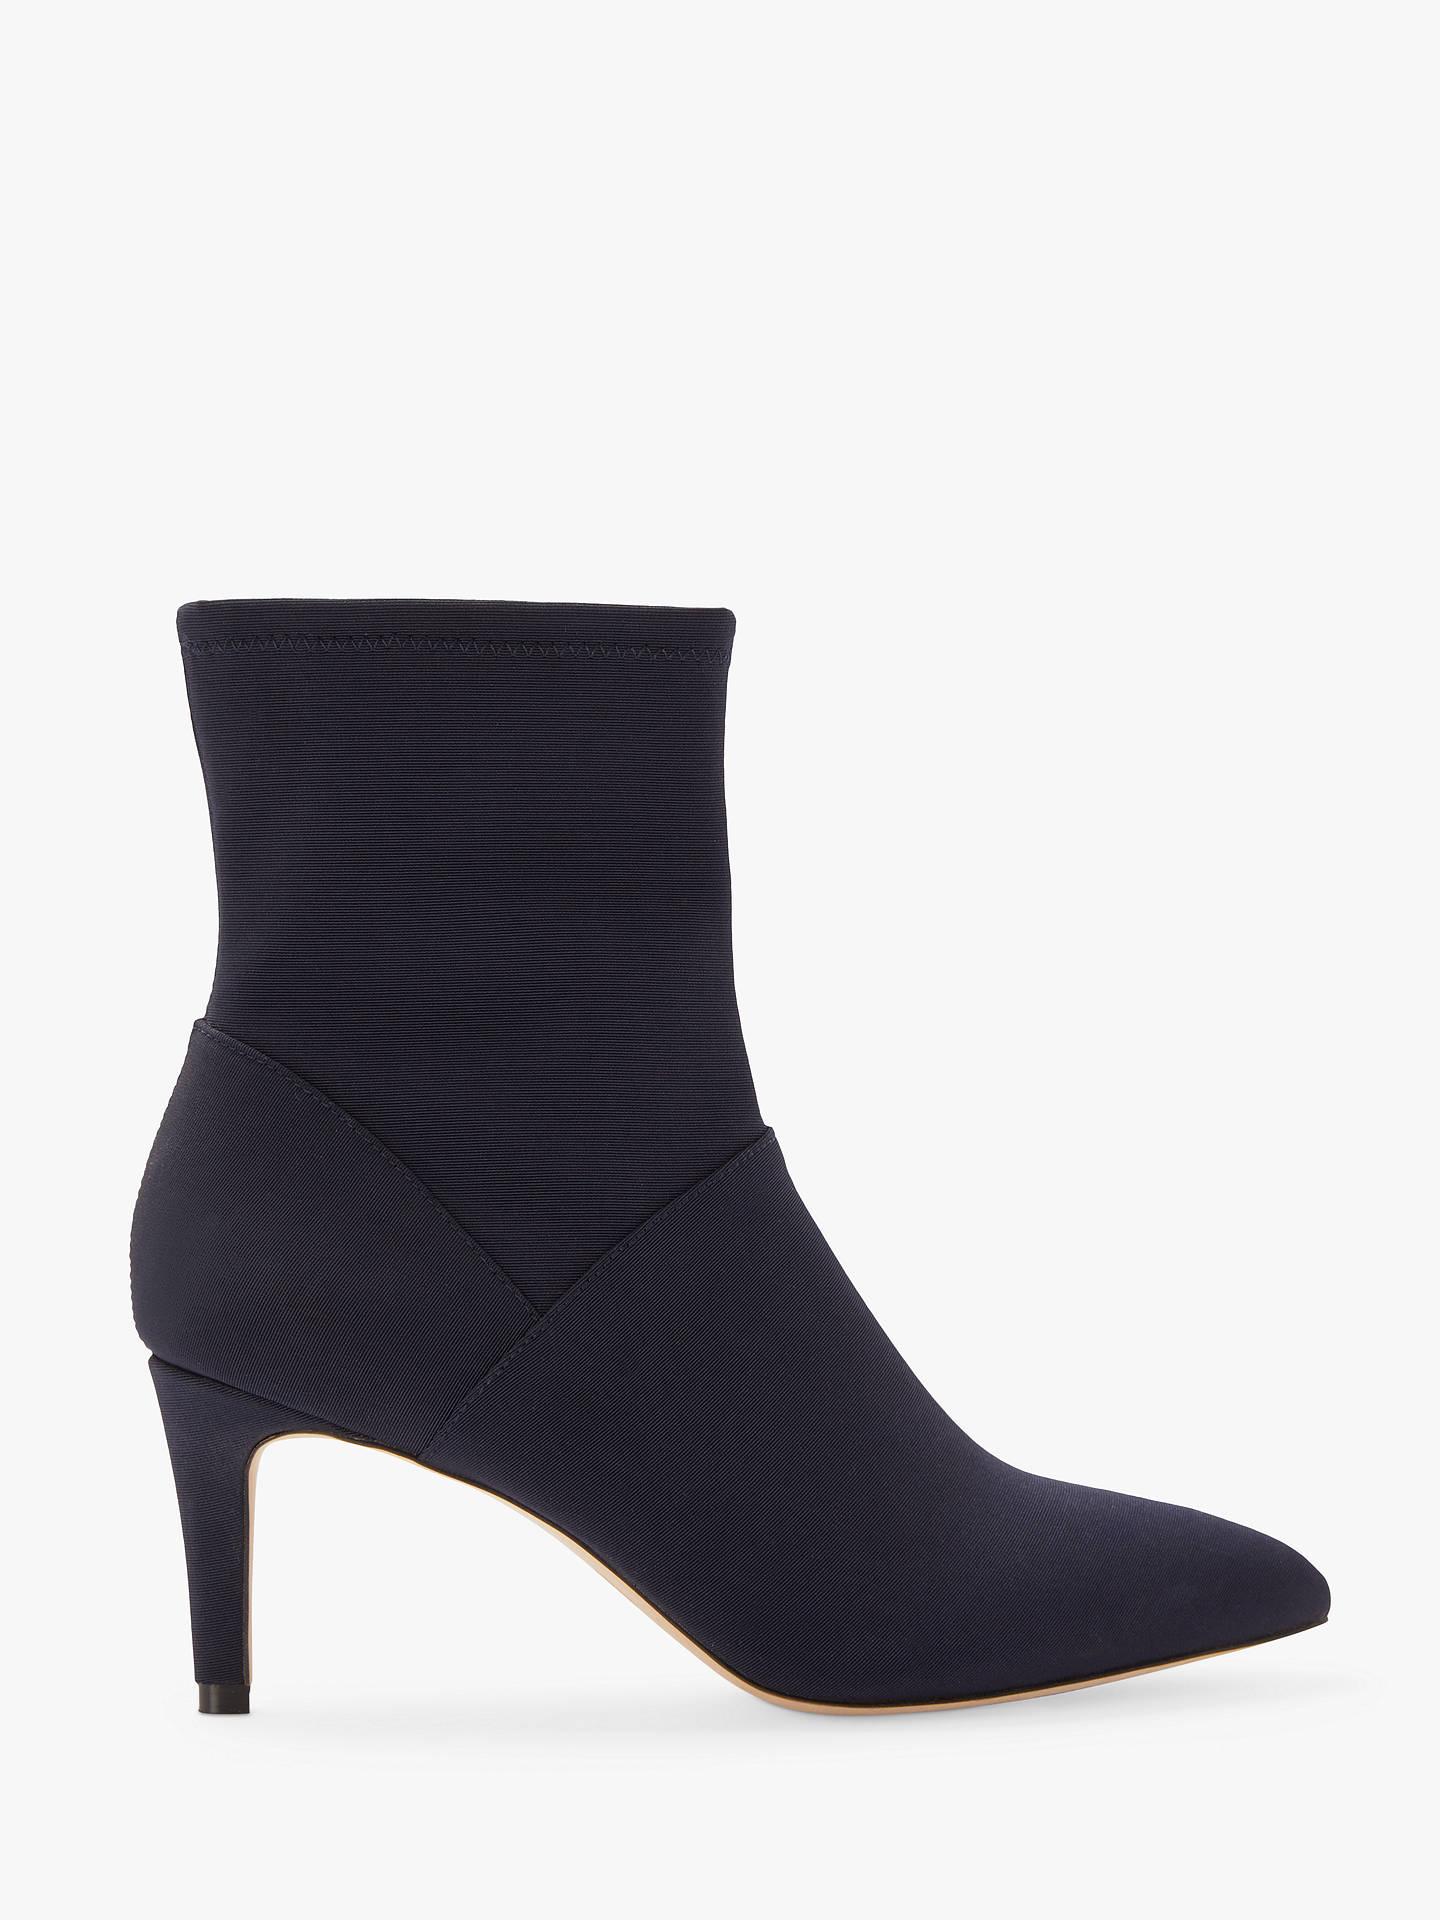 044b998c5b6 Buy Boden Stretch Stiletto Heel Ankle Boots